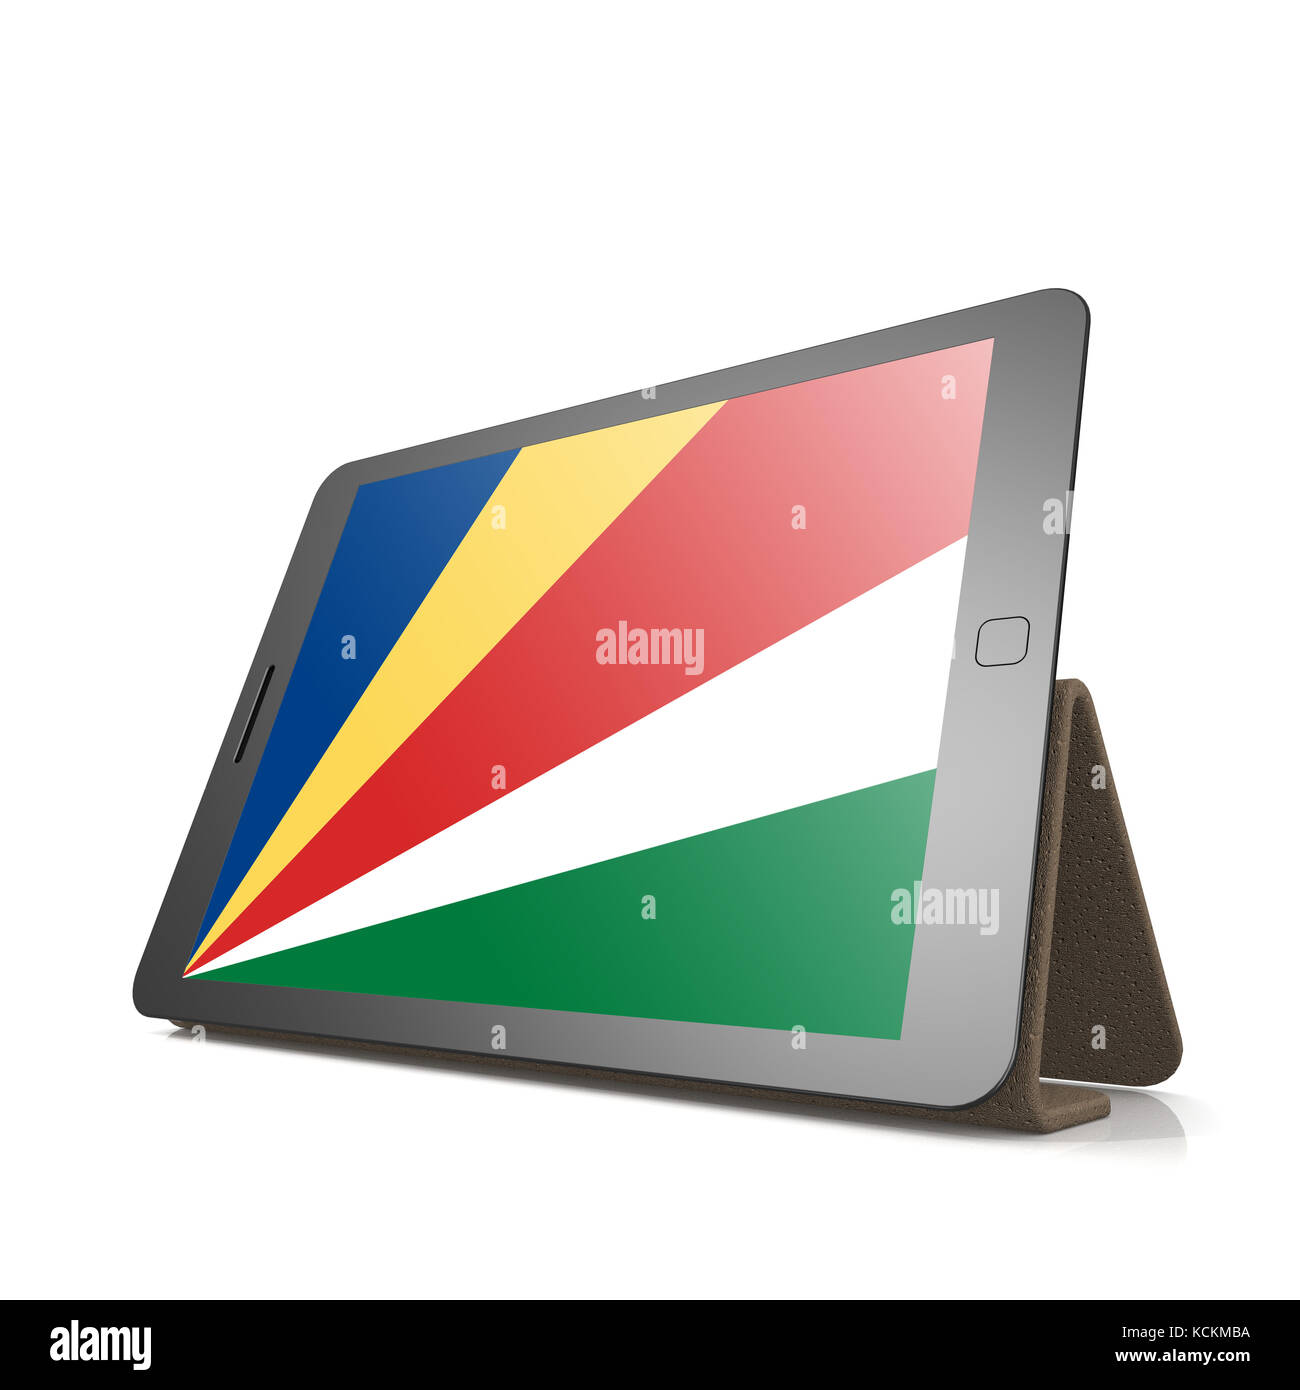 Tablet with Seychelles flag image with hi-res rendered artwork that could be used for any graphic design. - Stock Image